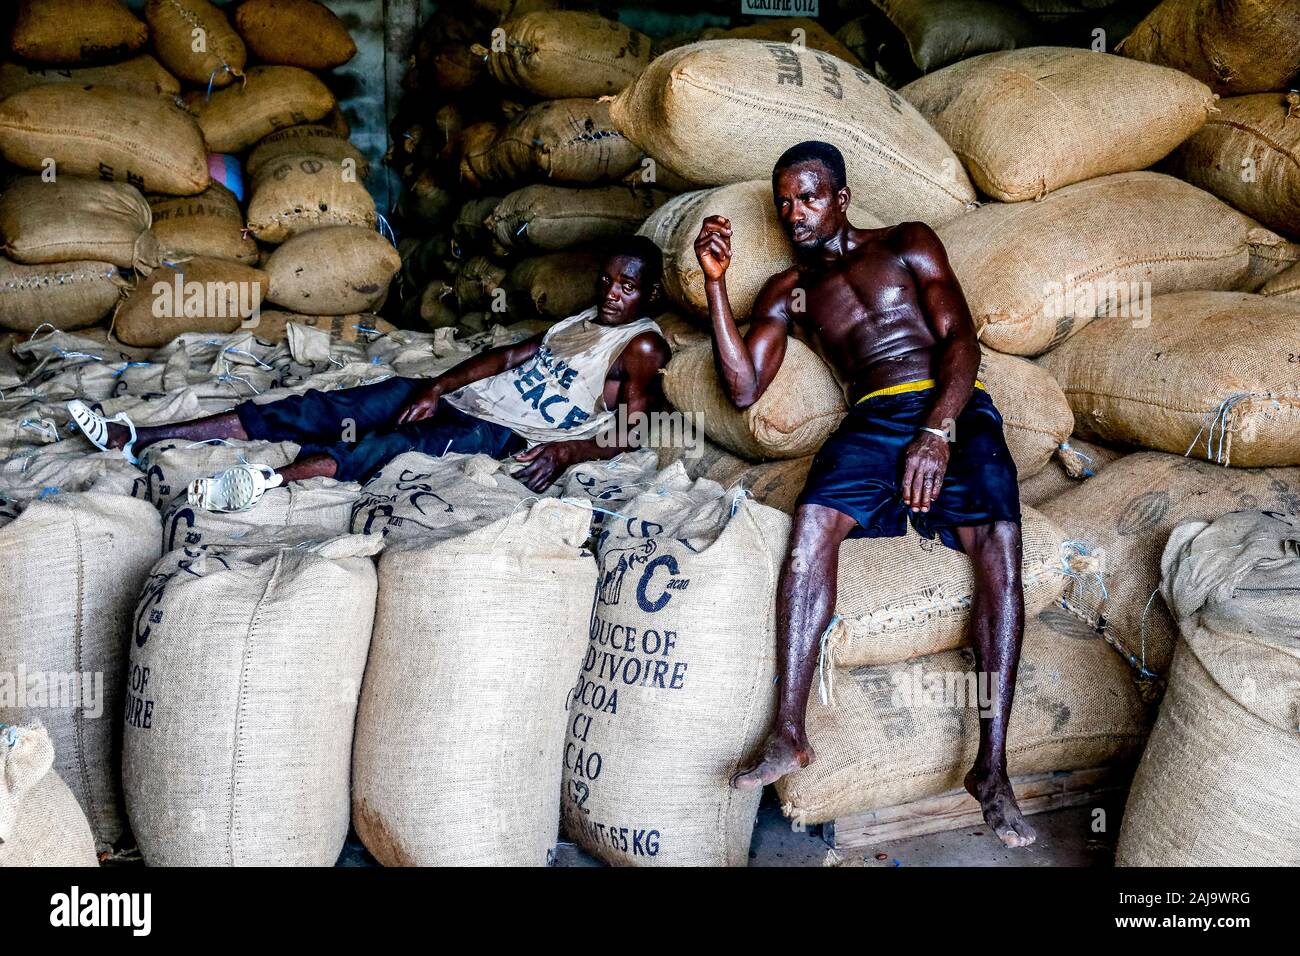 Cocoa workers resting in agboville, ivory coast Stock Photo